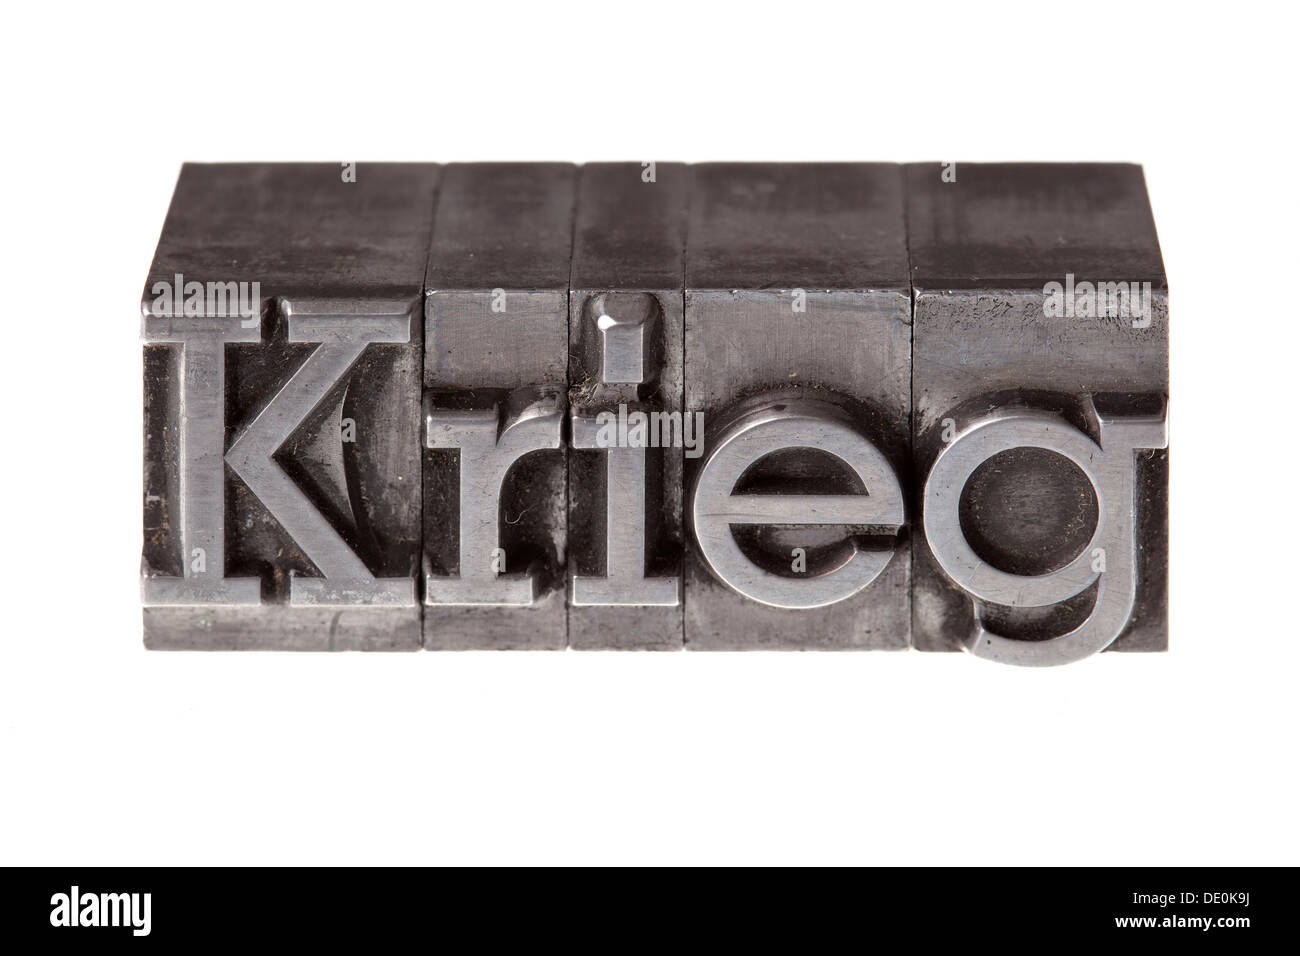 Old lead letters forming the word 'Krieg', German for war - Stock Image